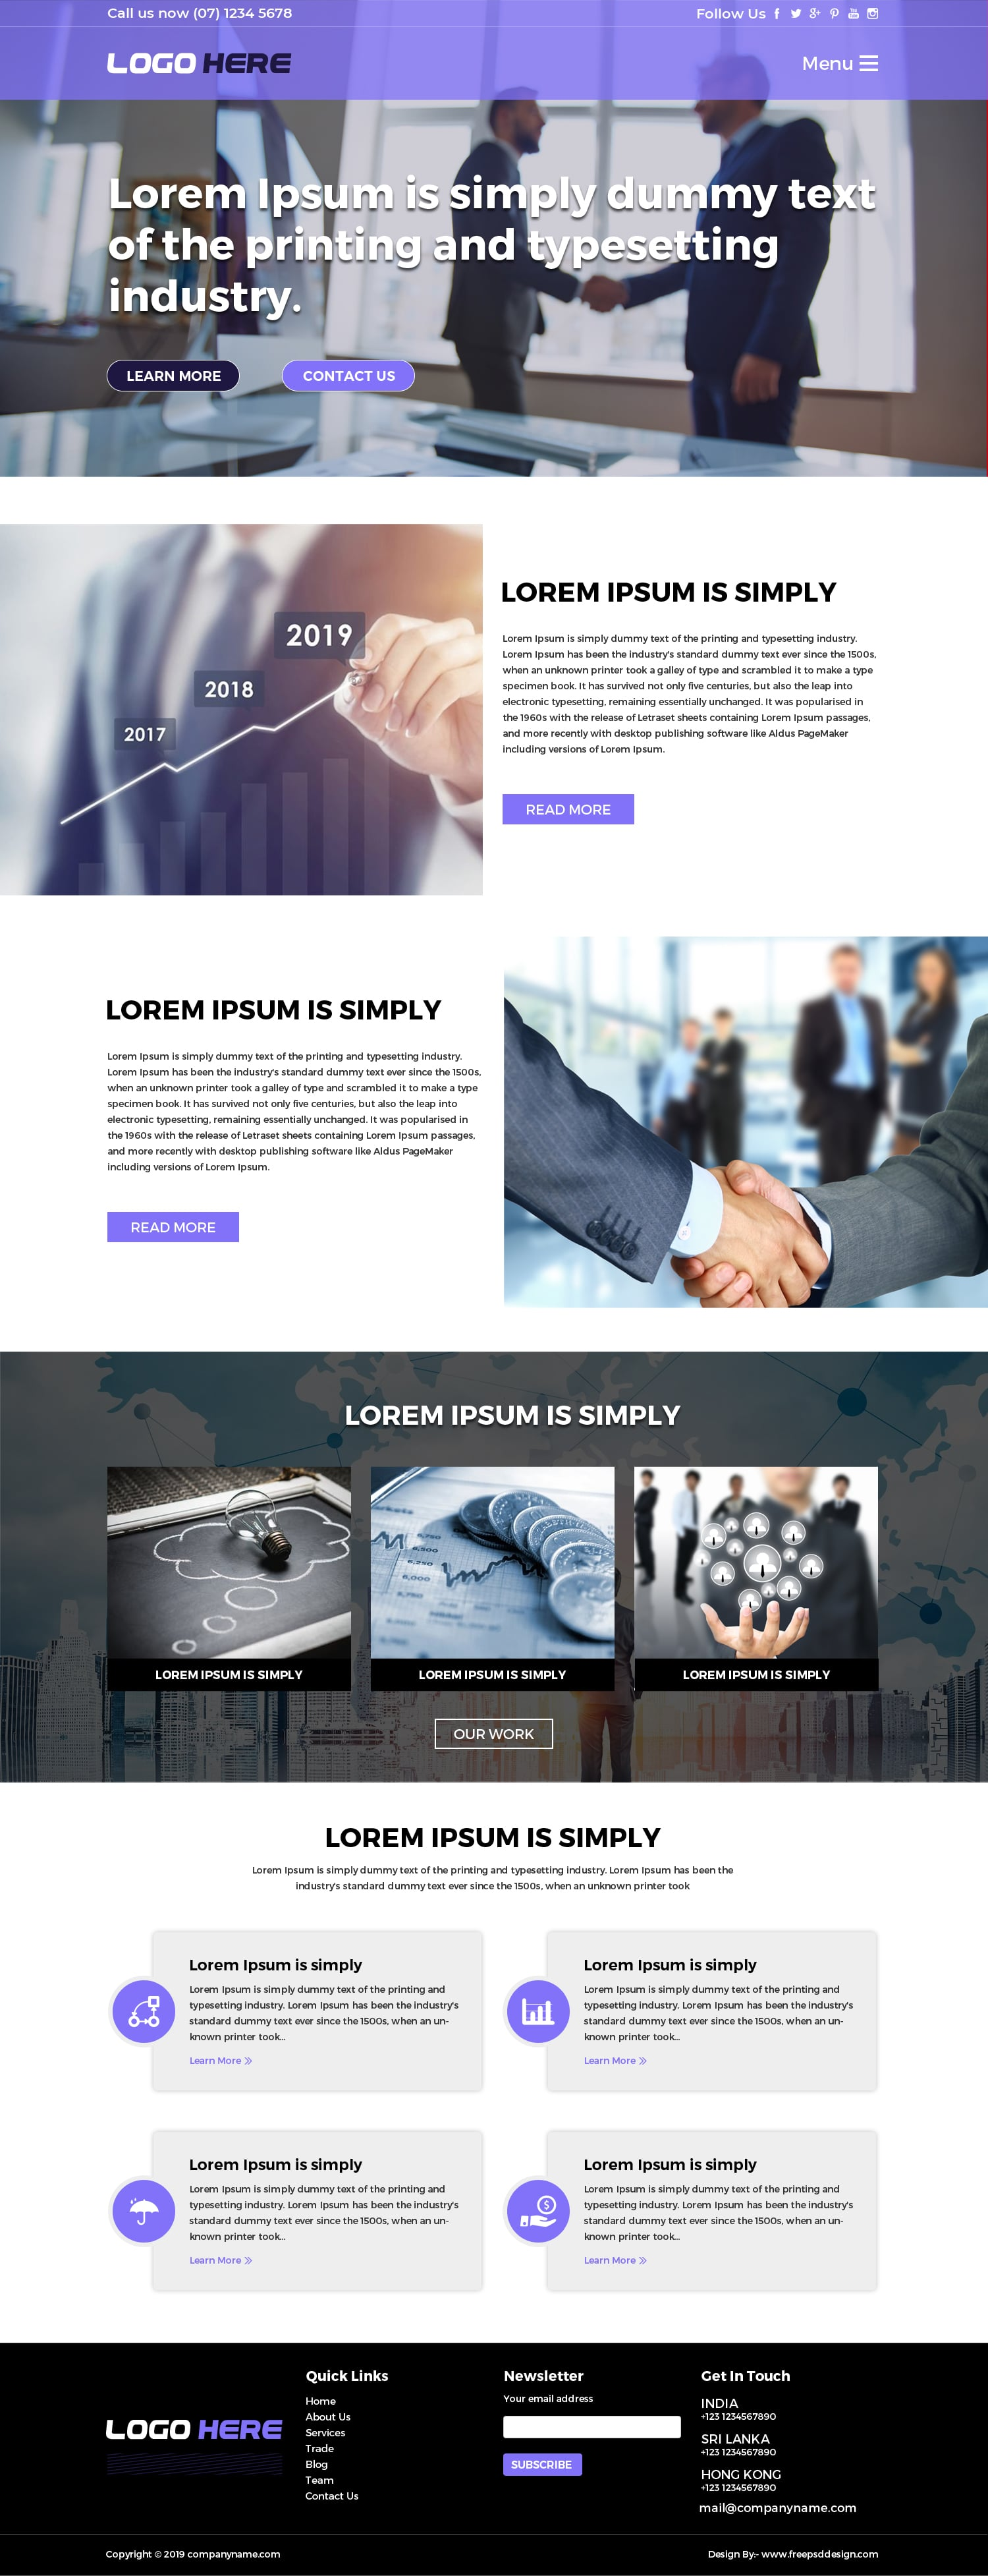 B2B Website Templates